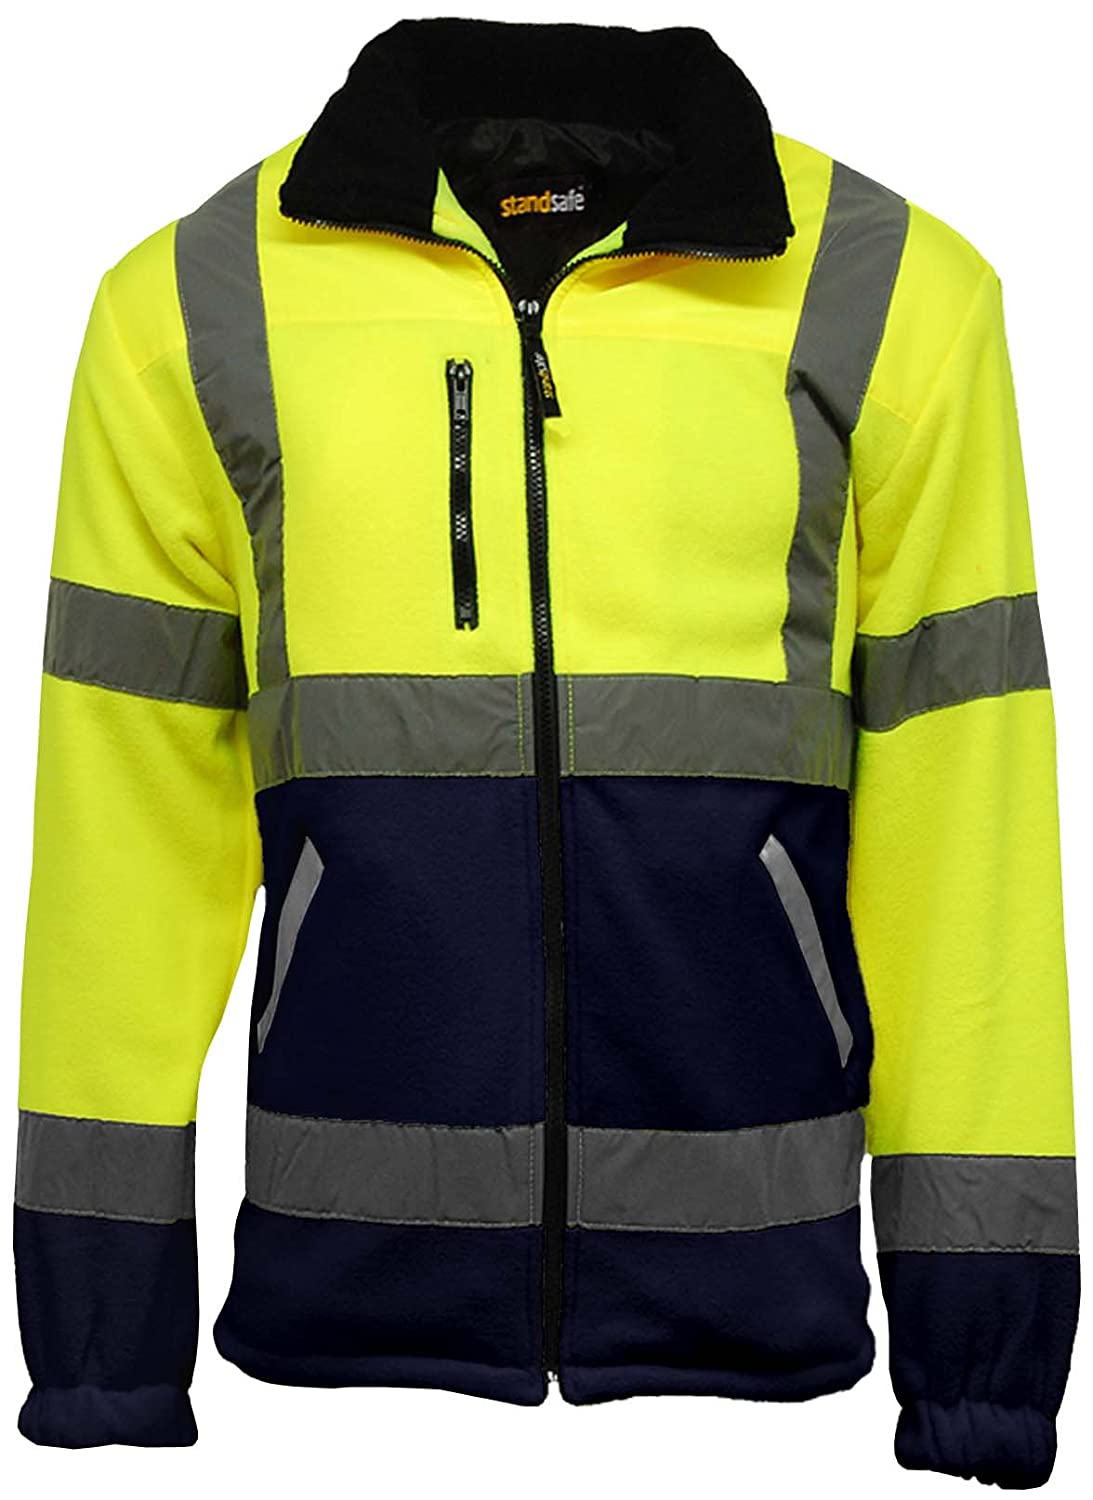 Mens Premium Safety Hi Vis Viz Visibility Lined Work Fleece Jacket StandSafe